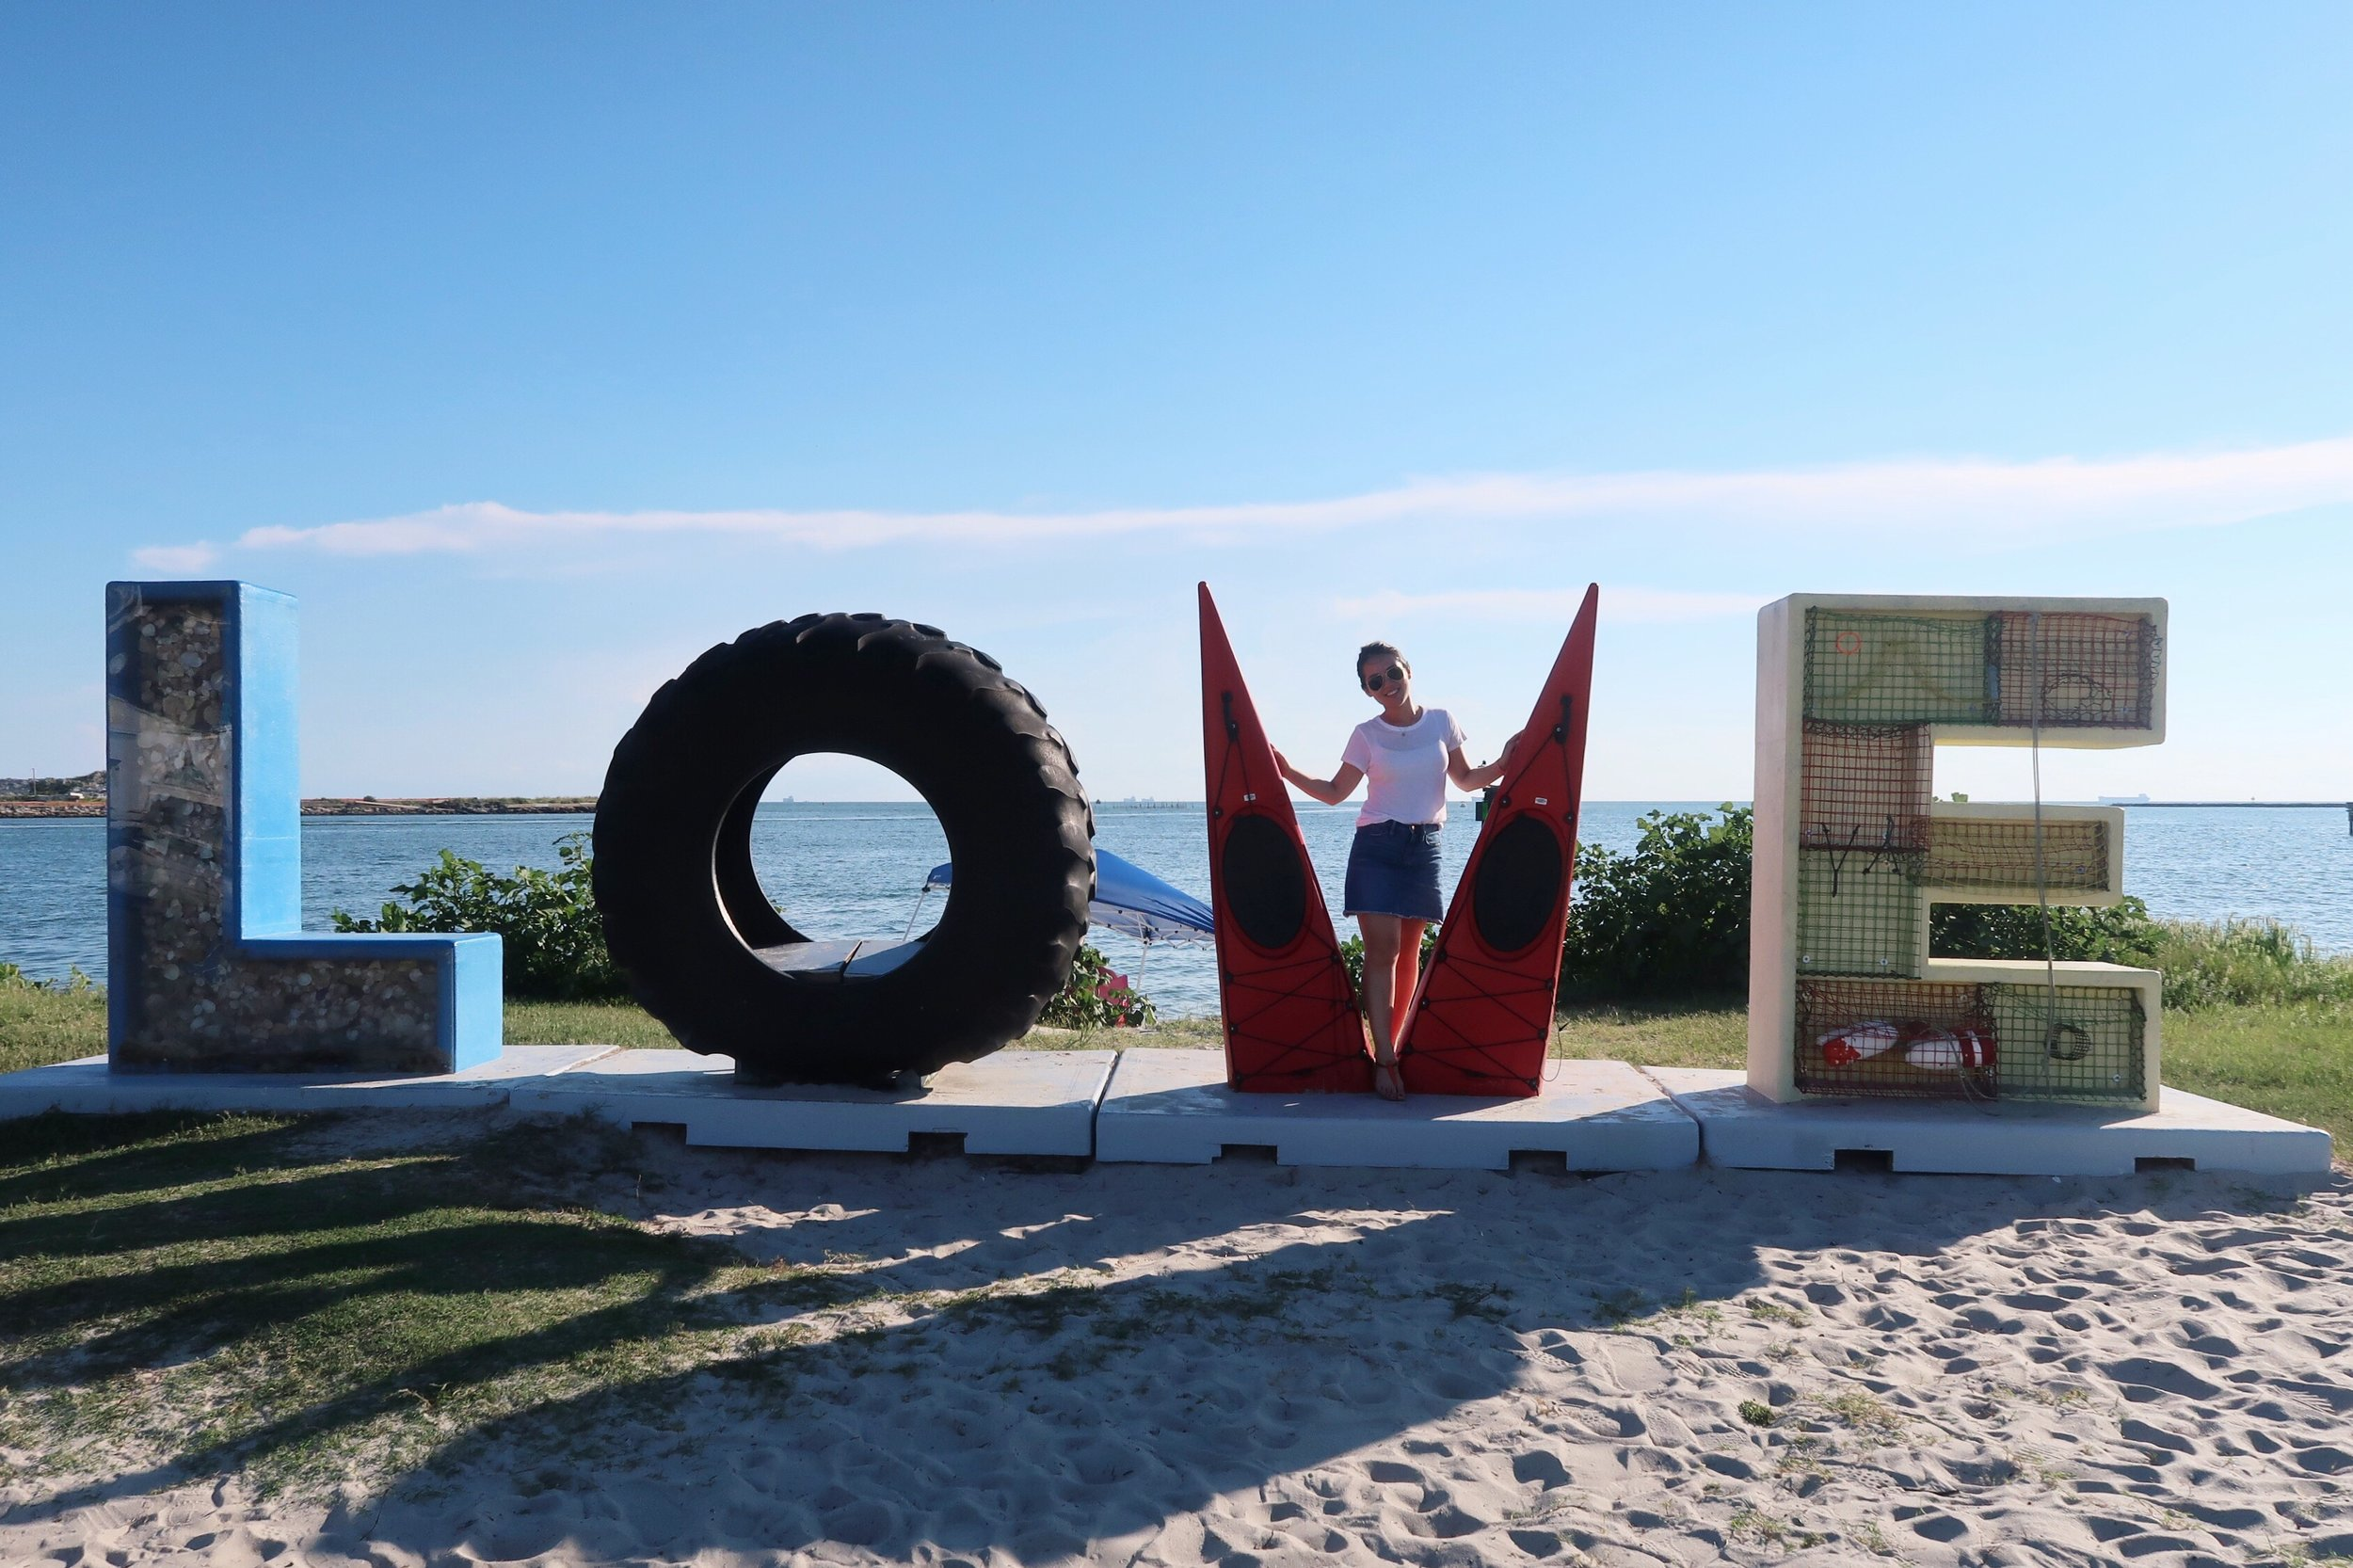 Visited LOVE sign in Cape Charles, VA on the way home. | 回家路途中順便去了一趟 Cape Charles, VA。